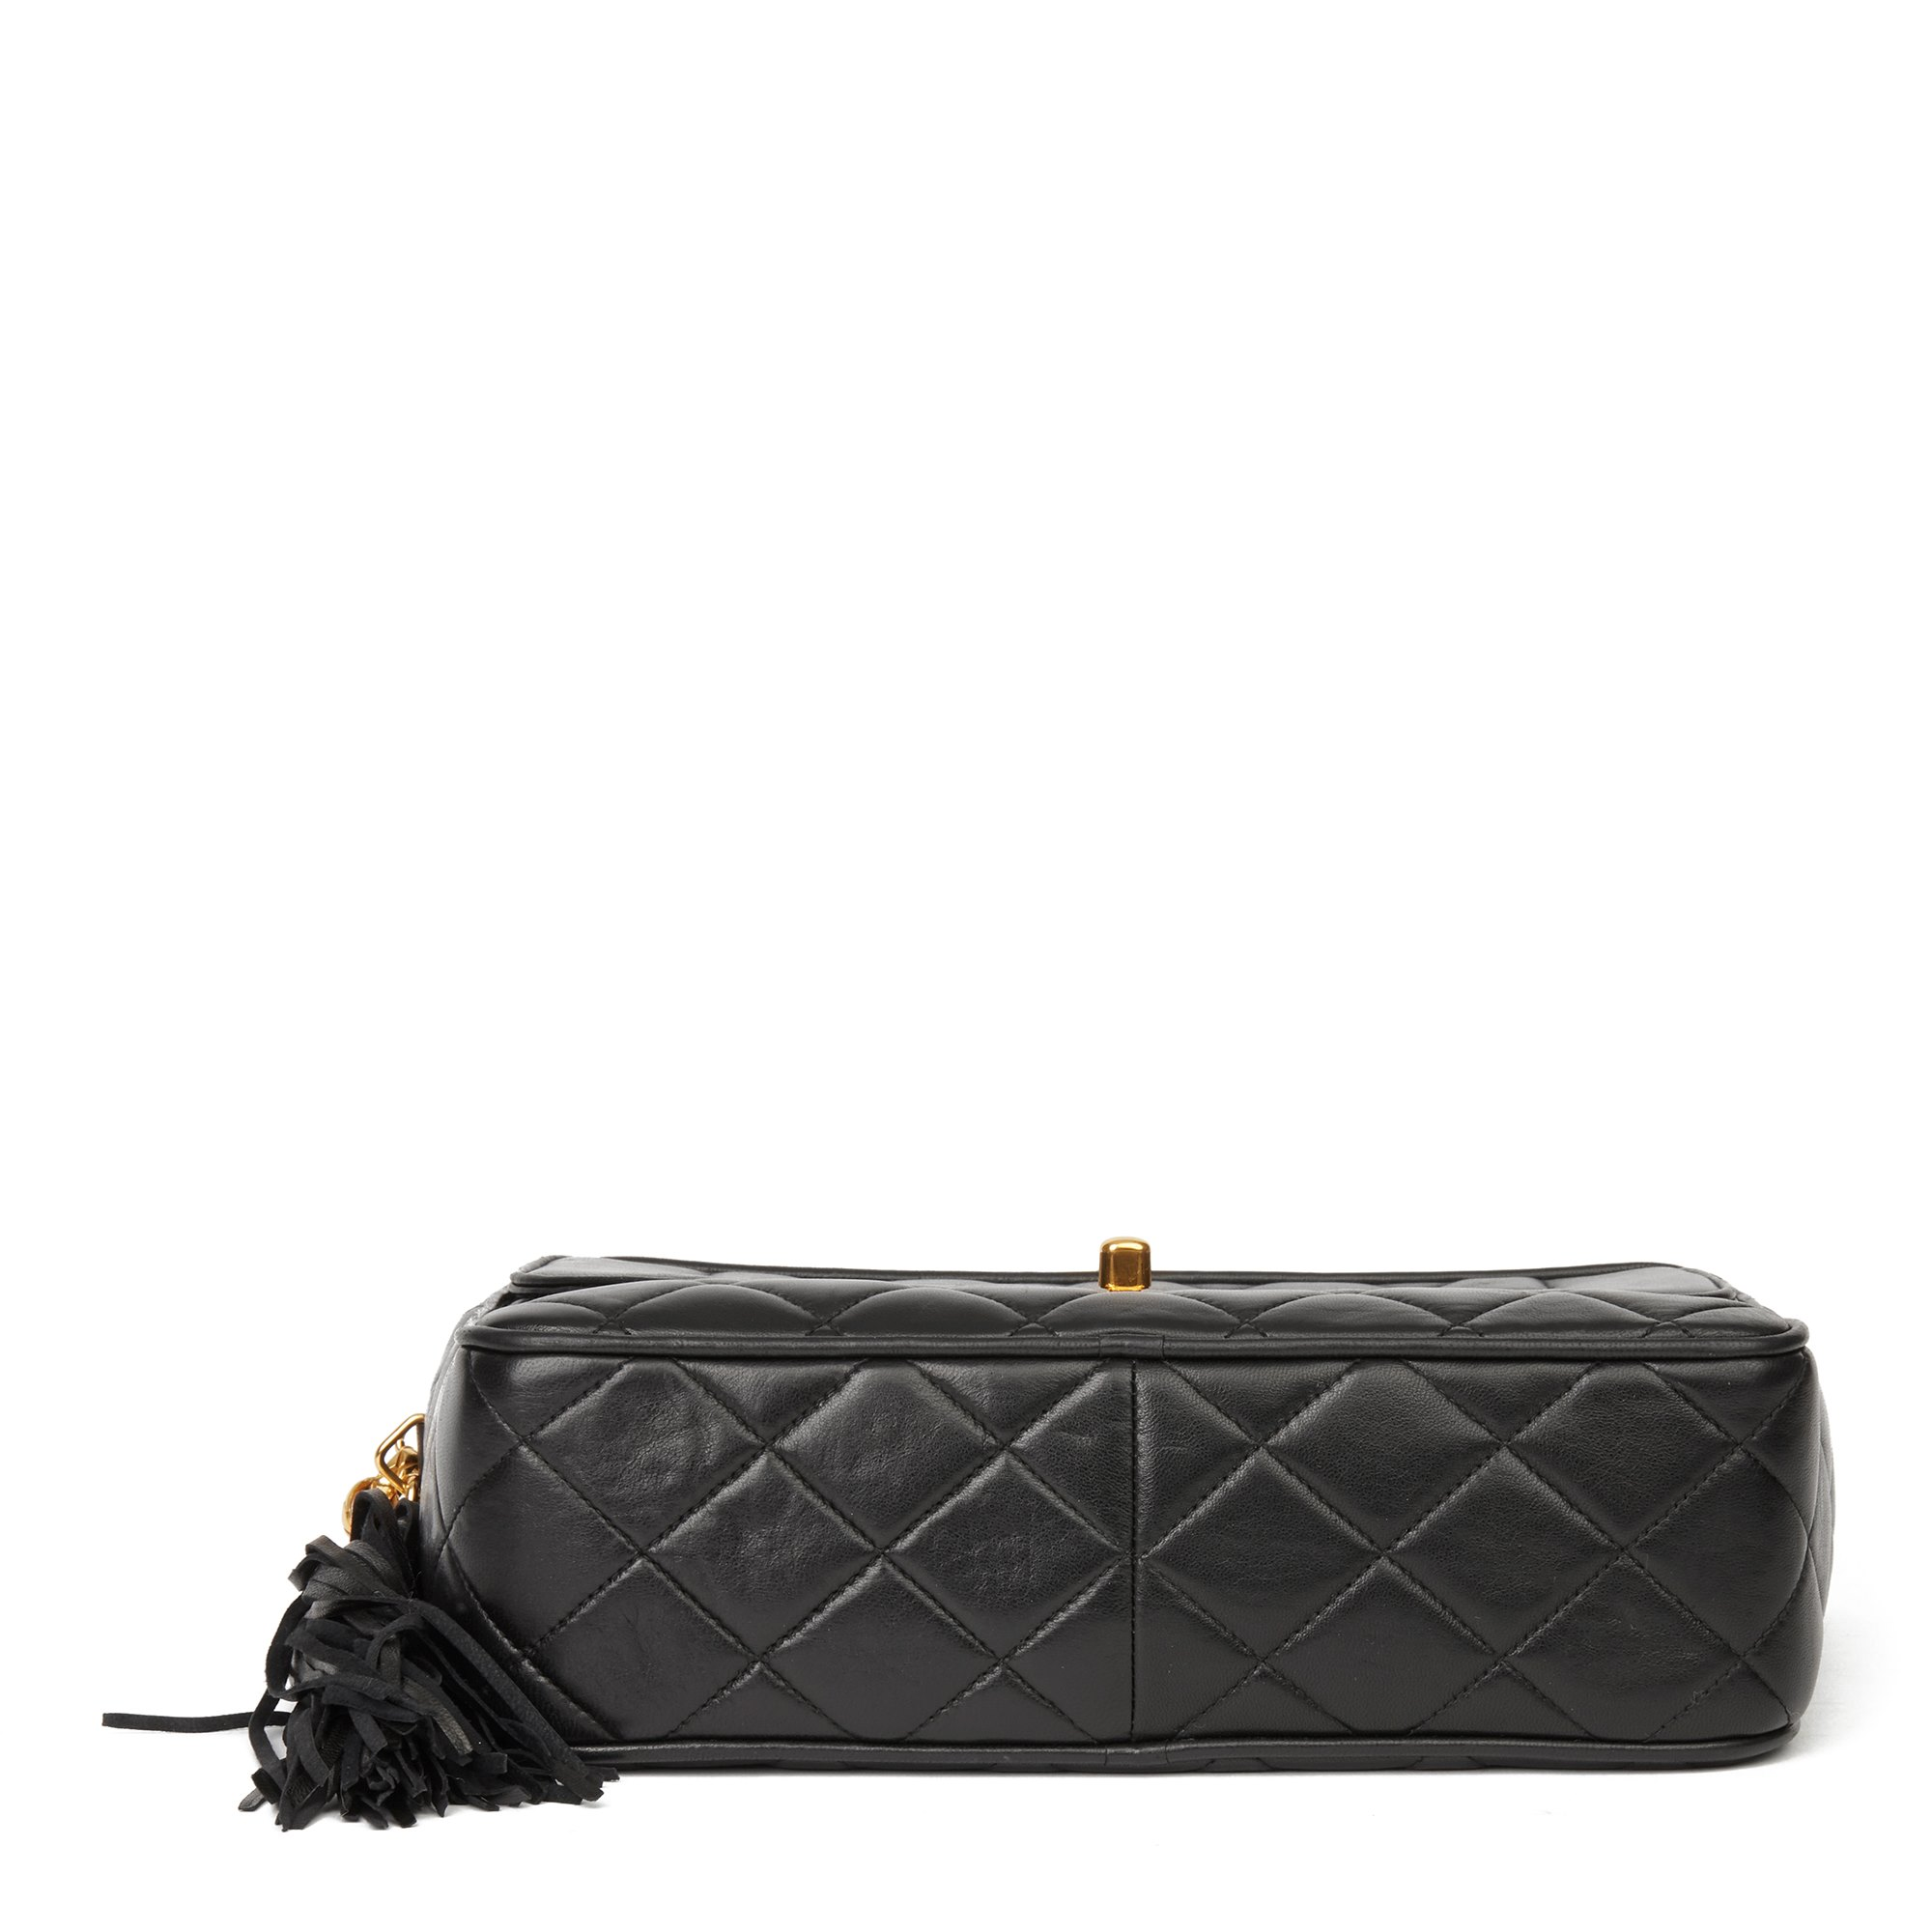 Chanel Black Quilted Lambskin Vintage Classic Camera Bag